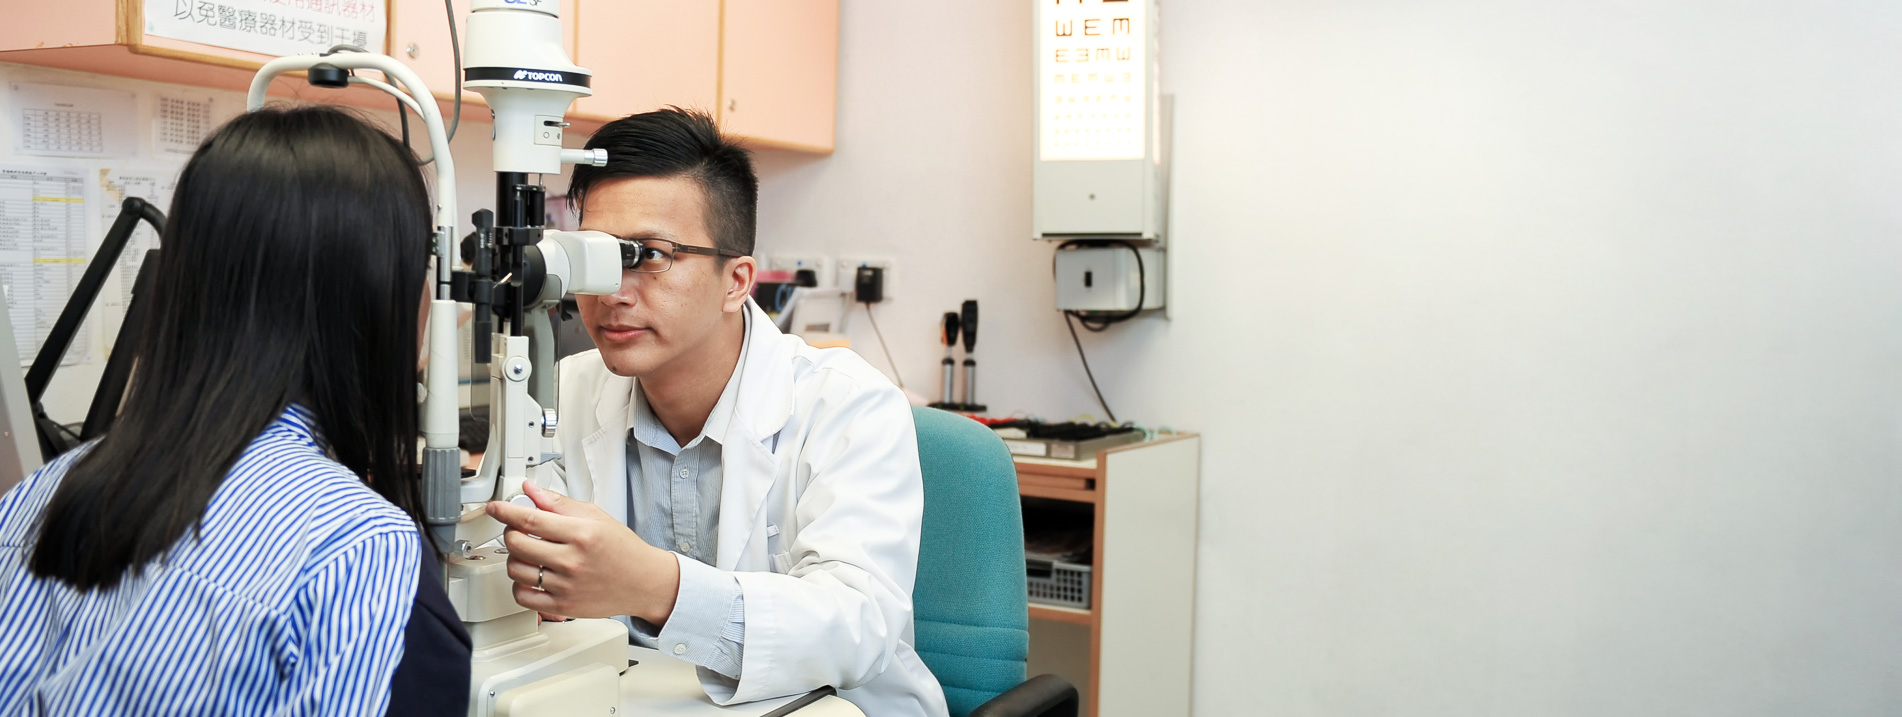 An optometrist conduct vision screening for a patient